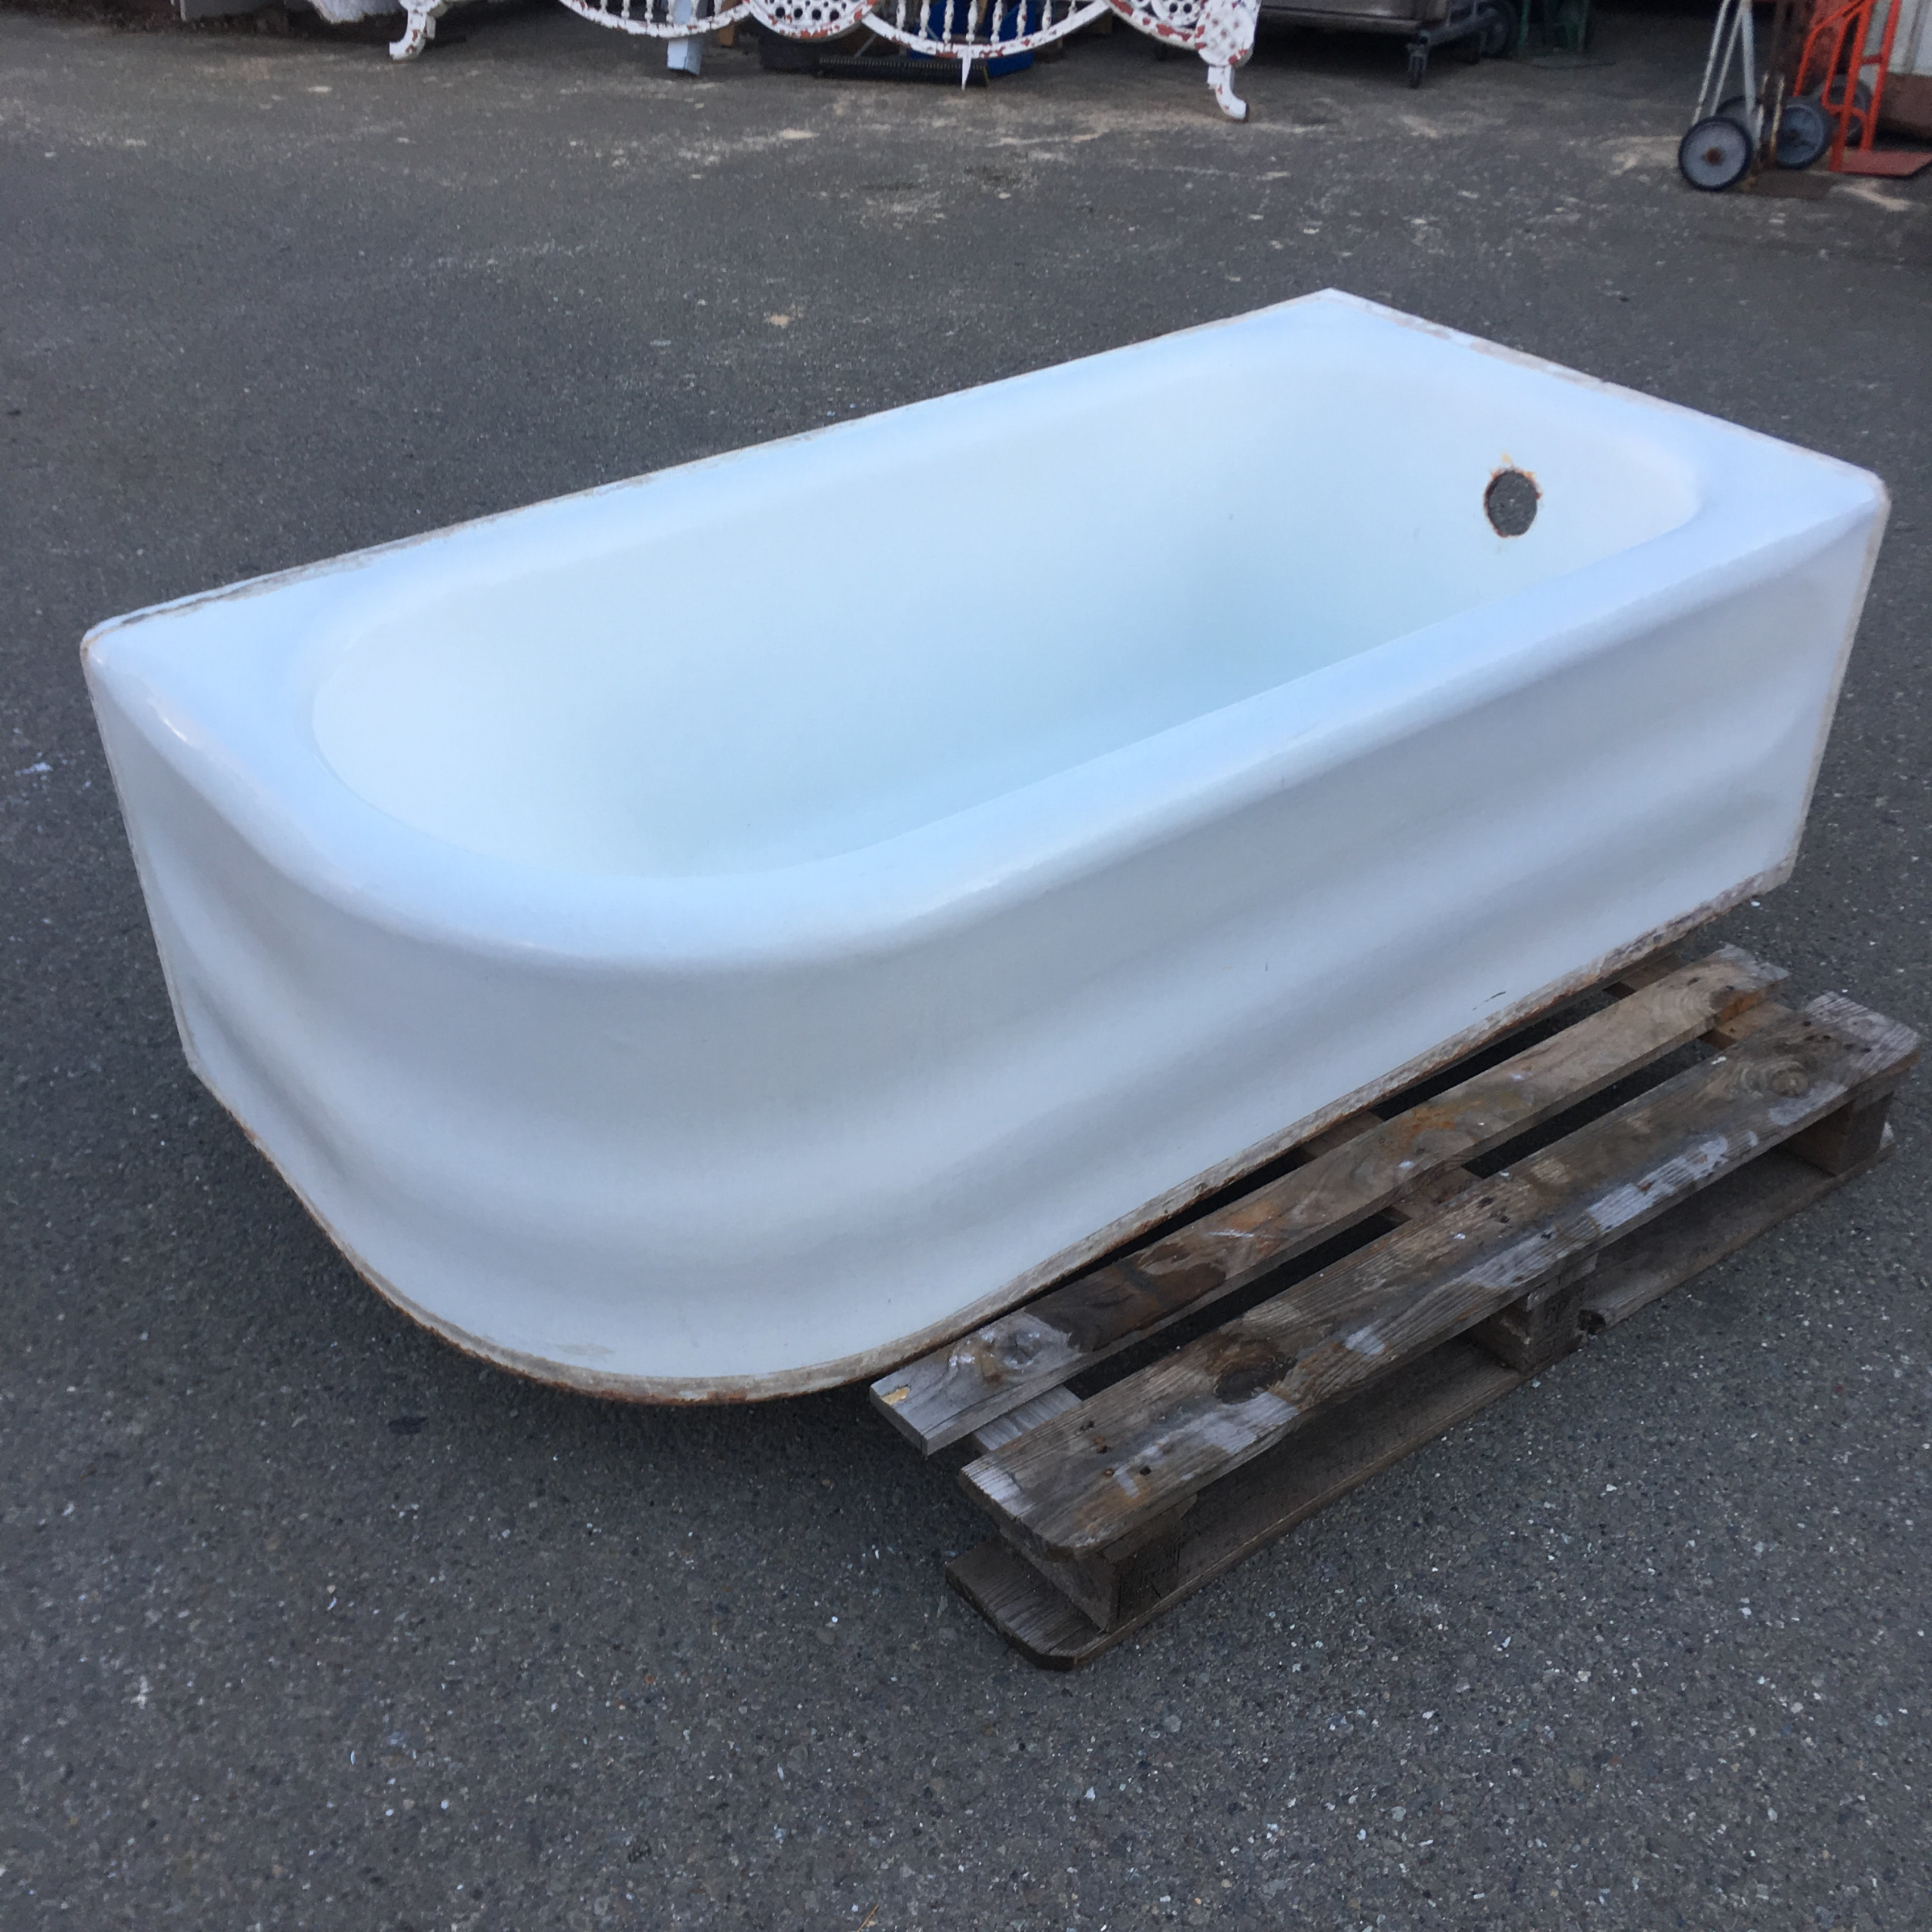 Awesome Drain Right Gift - Bathtub Design Ideas - klotsnet.com